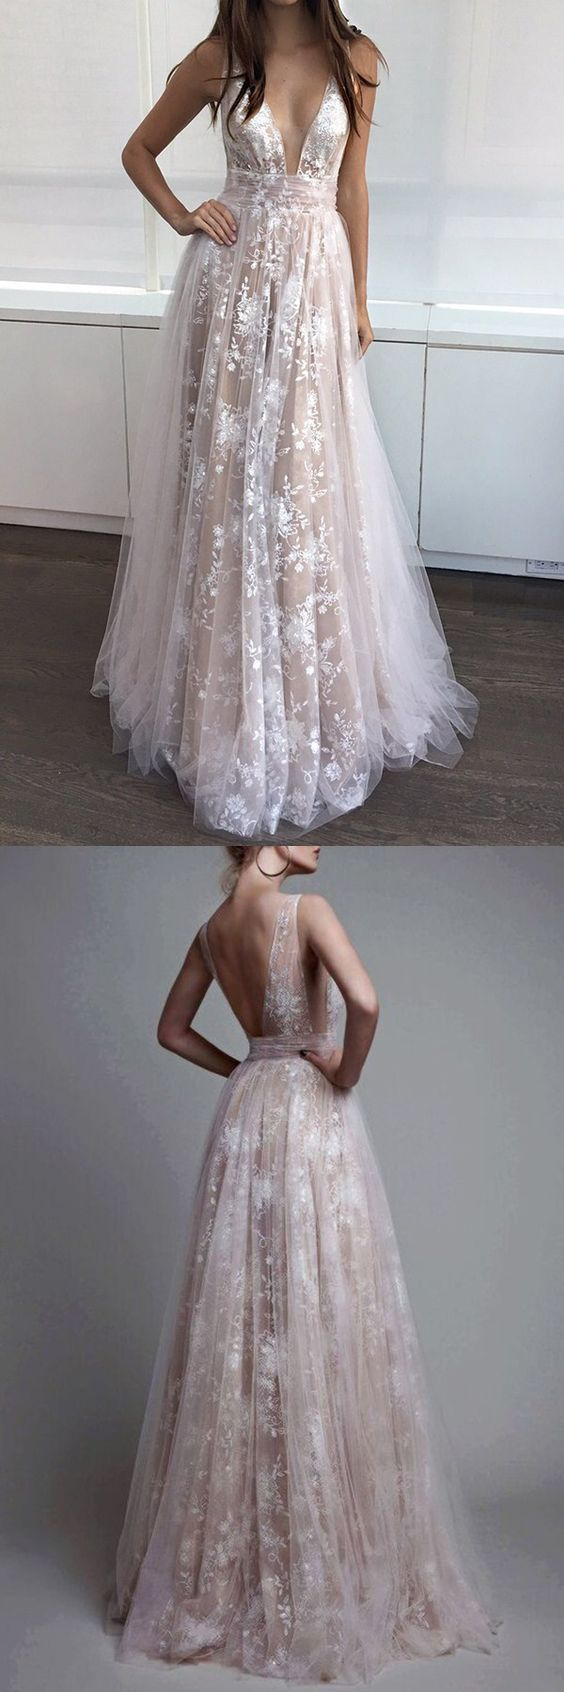 The 24 best images about Dresses on Pinterest | Long prom dresses ...